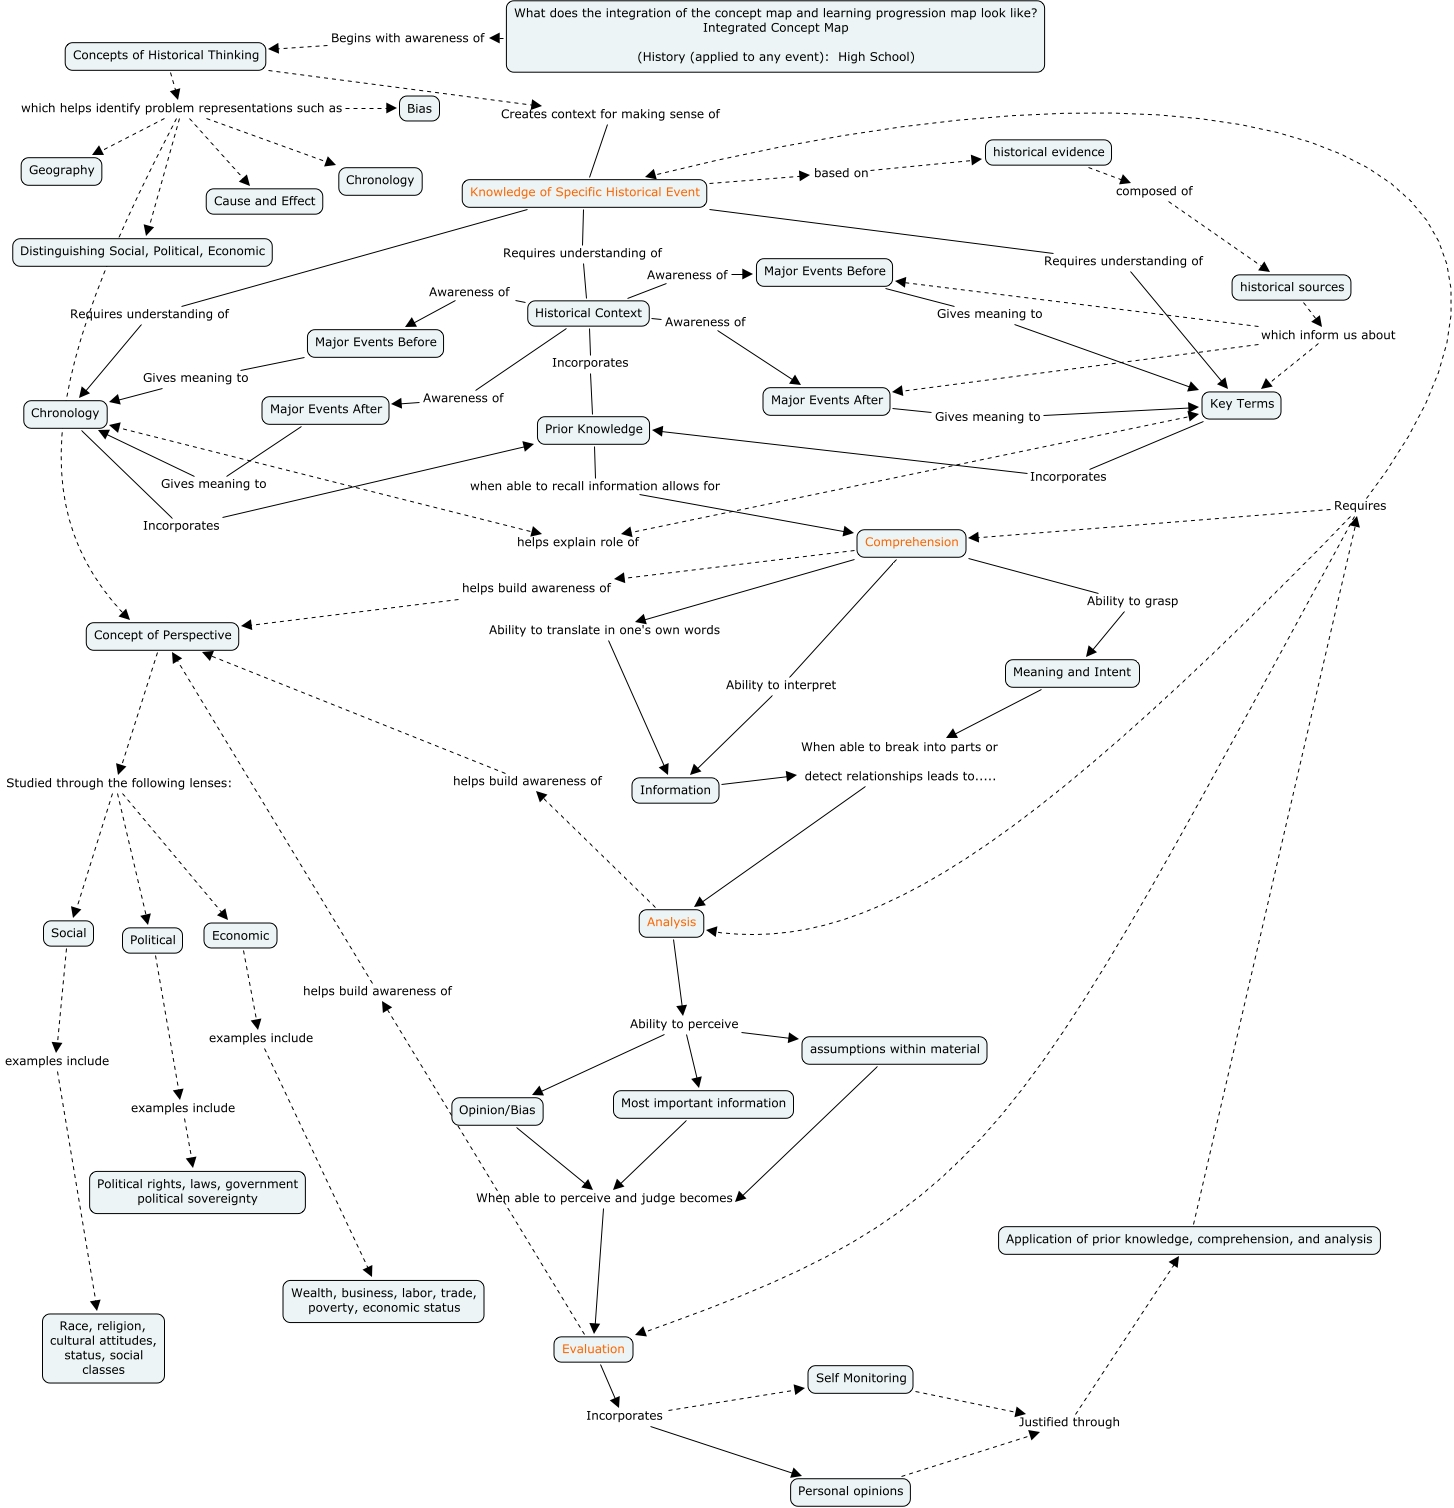 Integrated Concept Map Concept And Learning Progression What - Us history concept maps